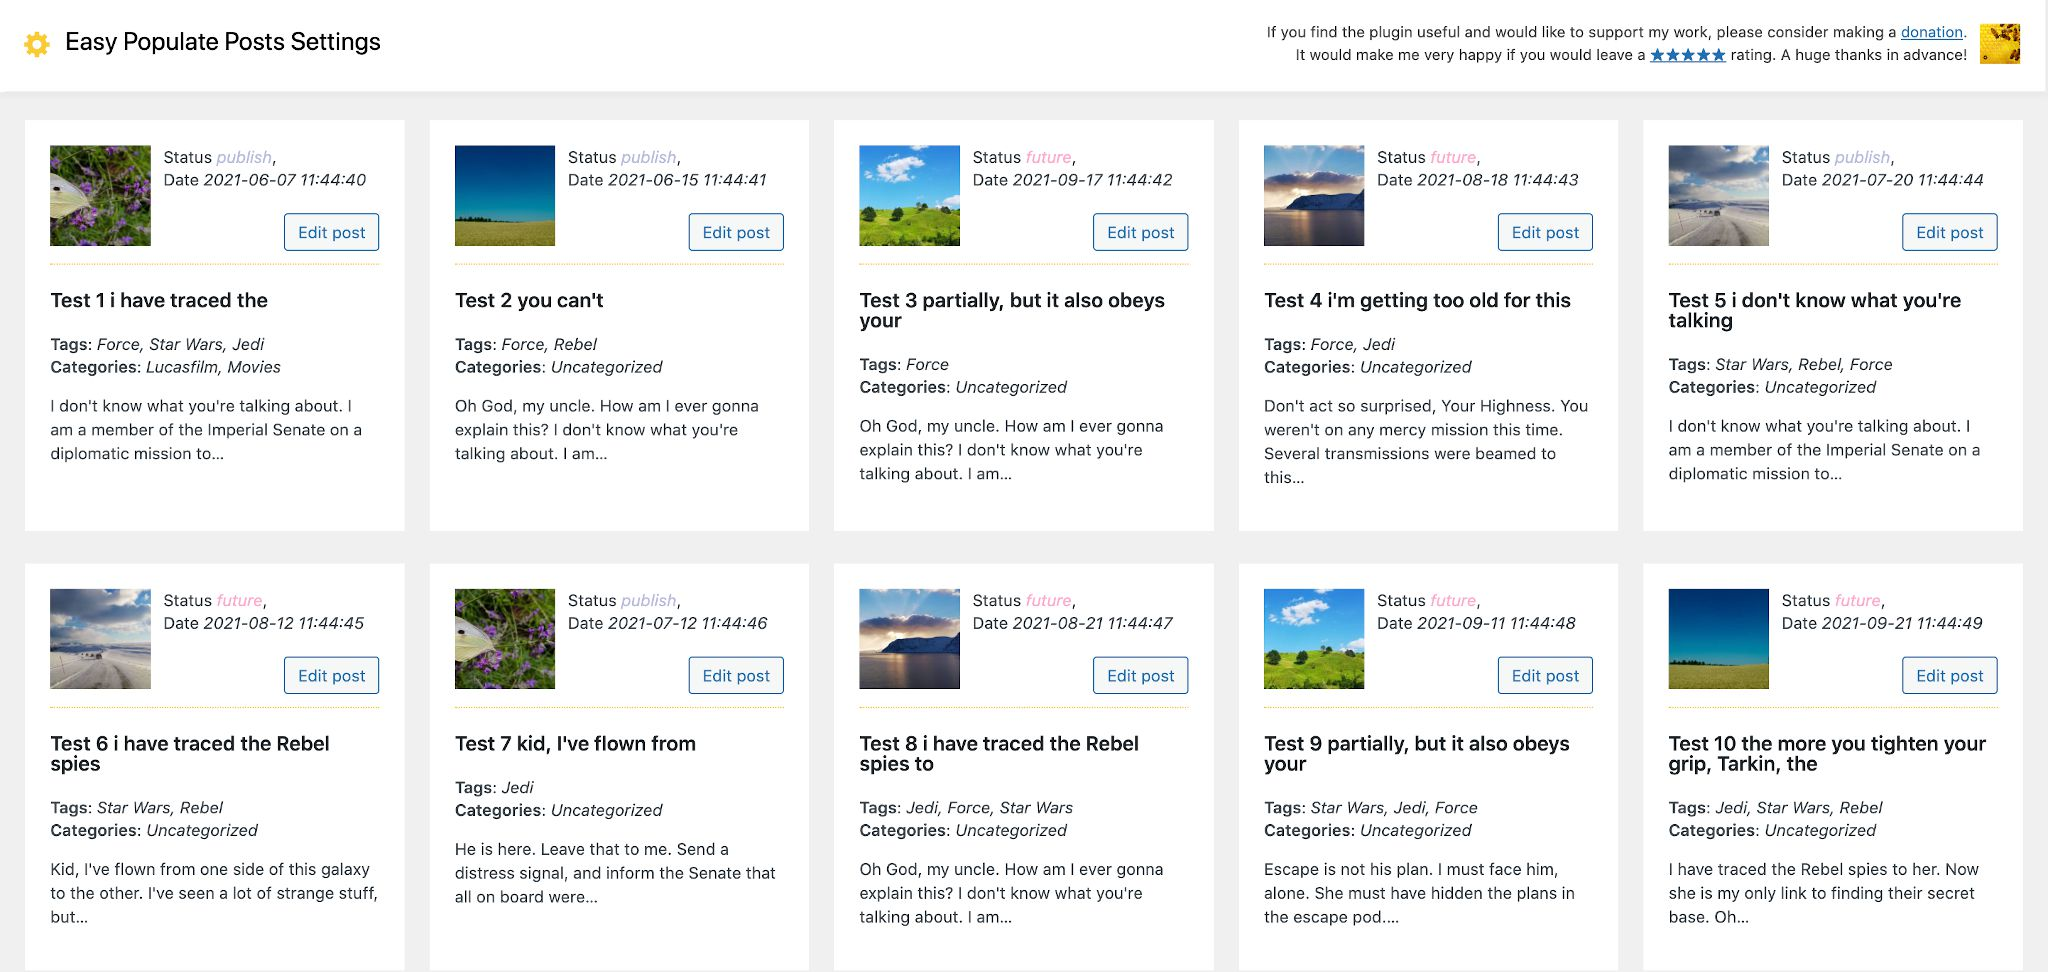 Easy Populate Posts Generated Content Preview